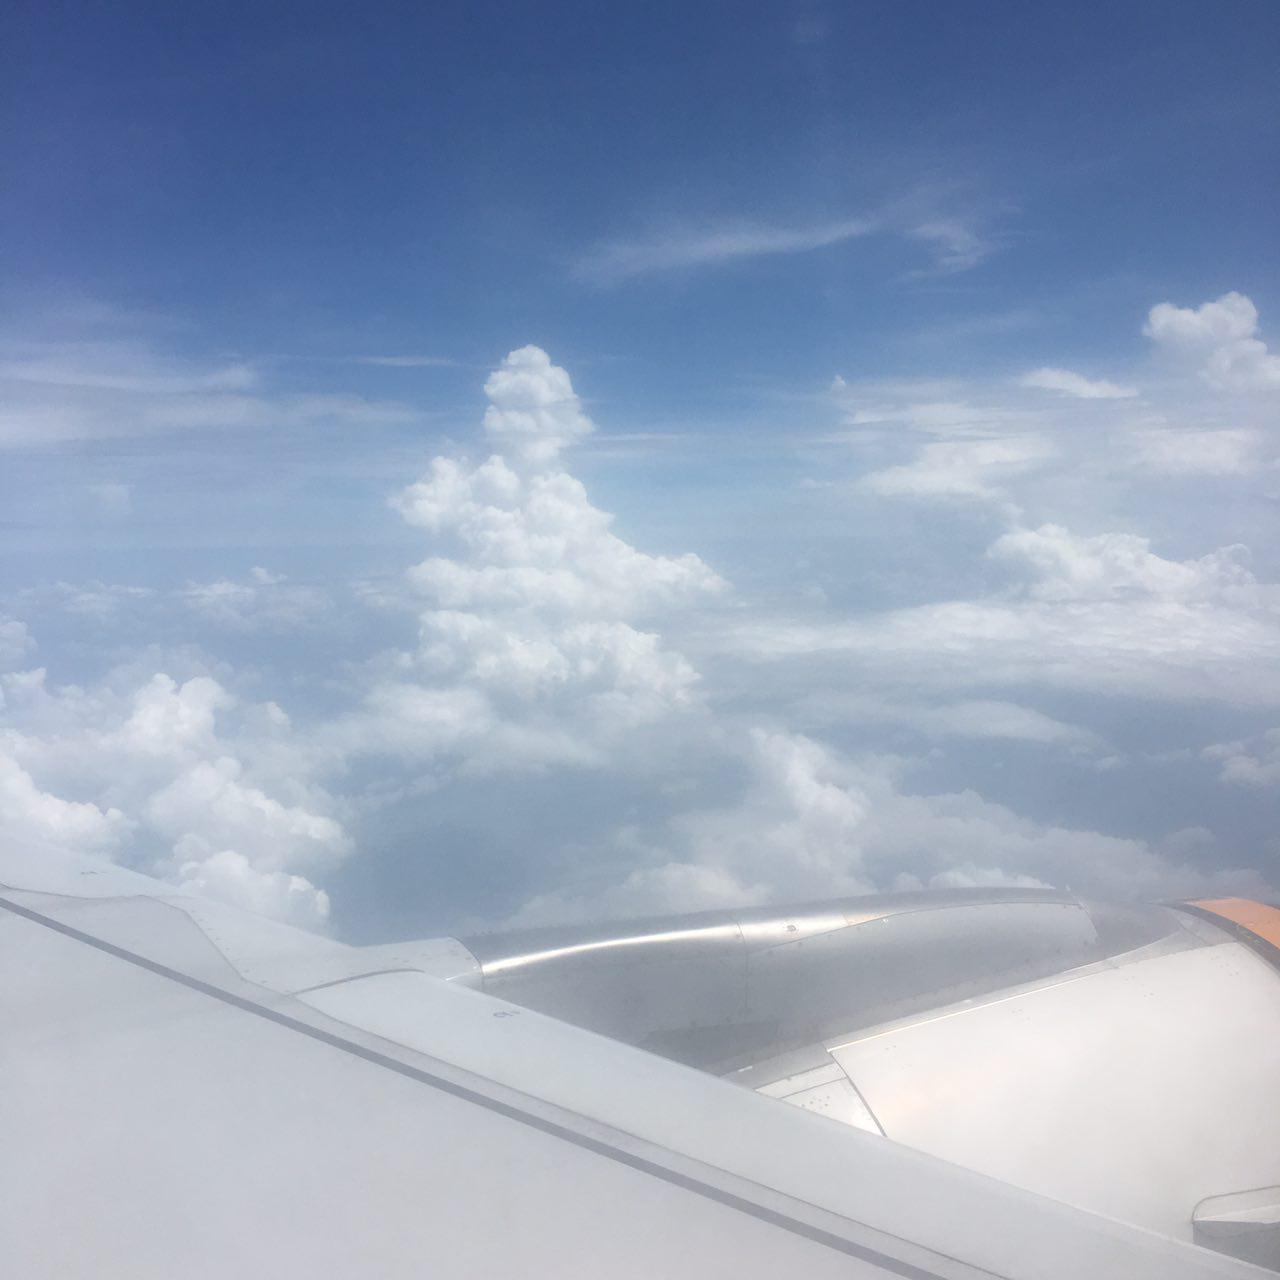 Clouds Travel